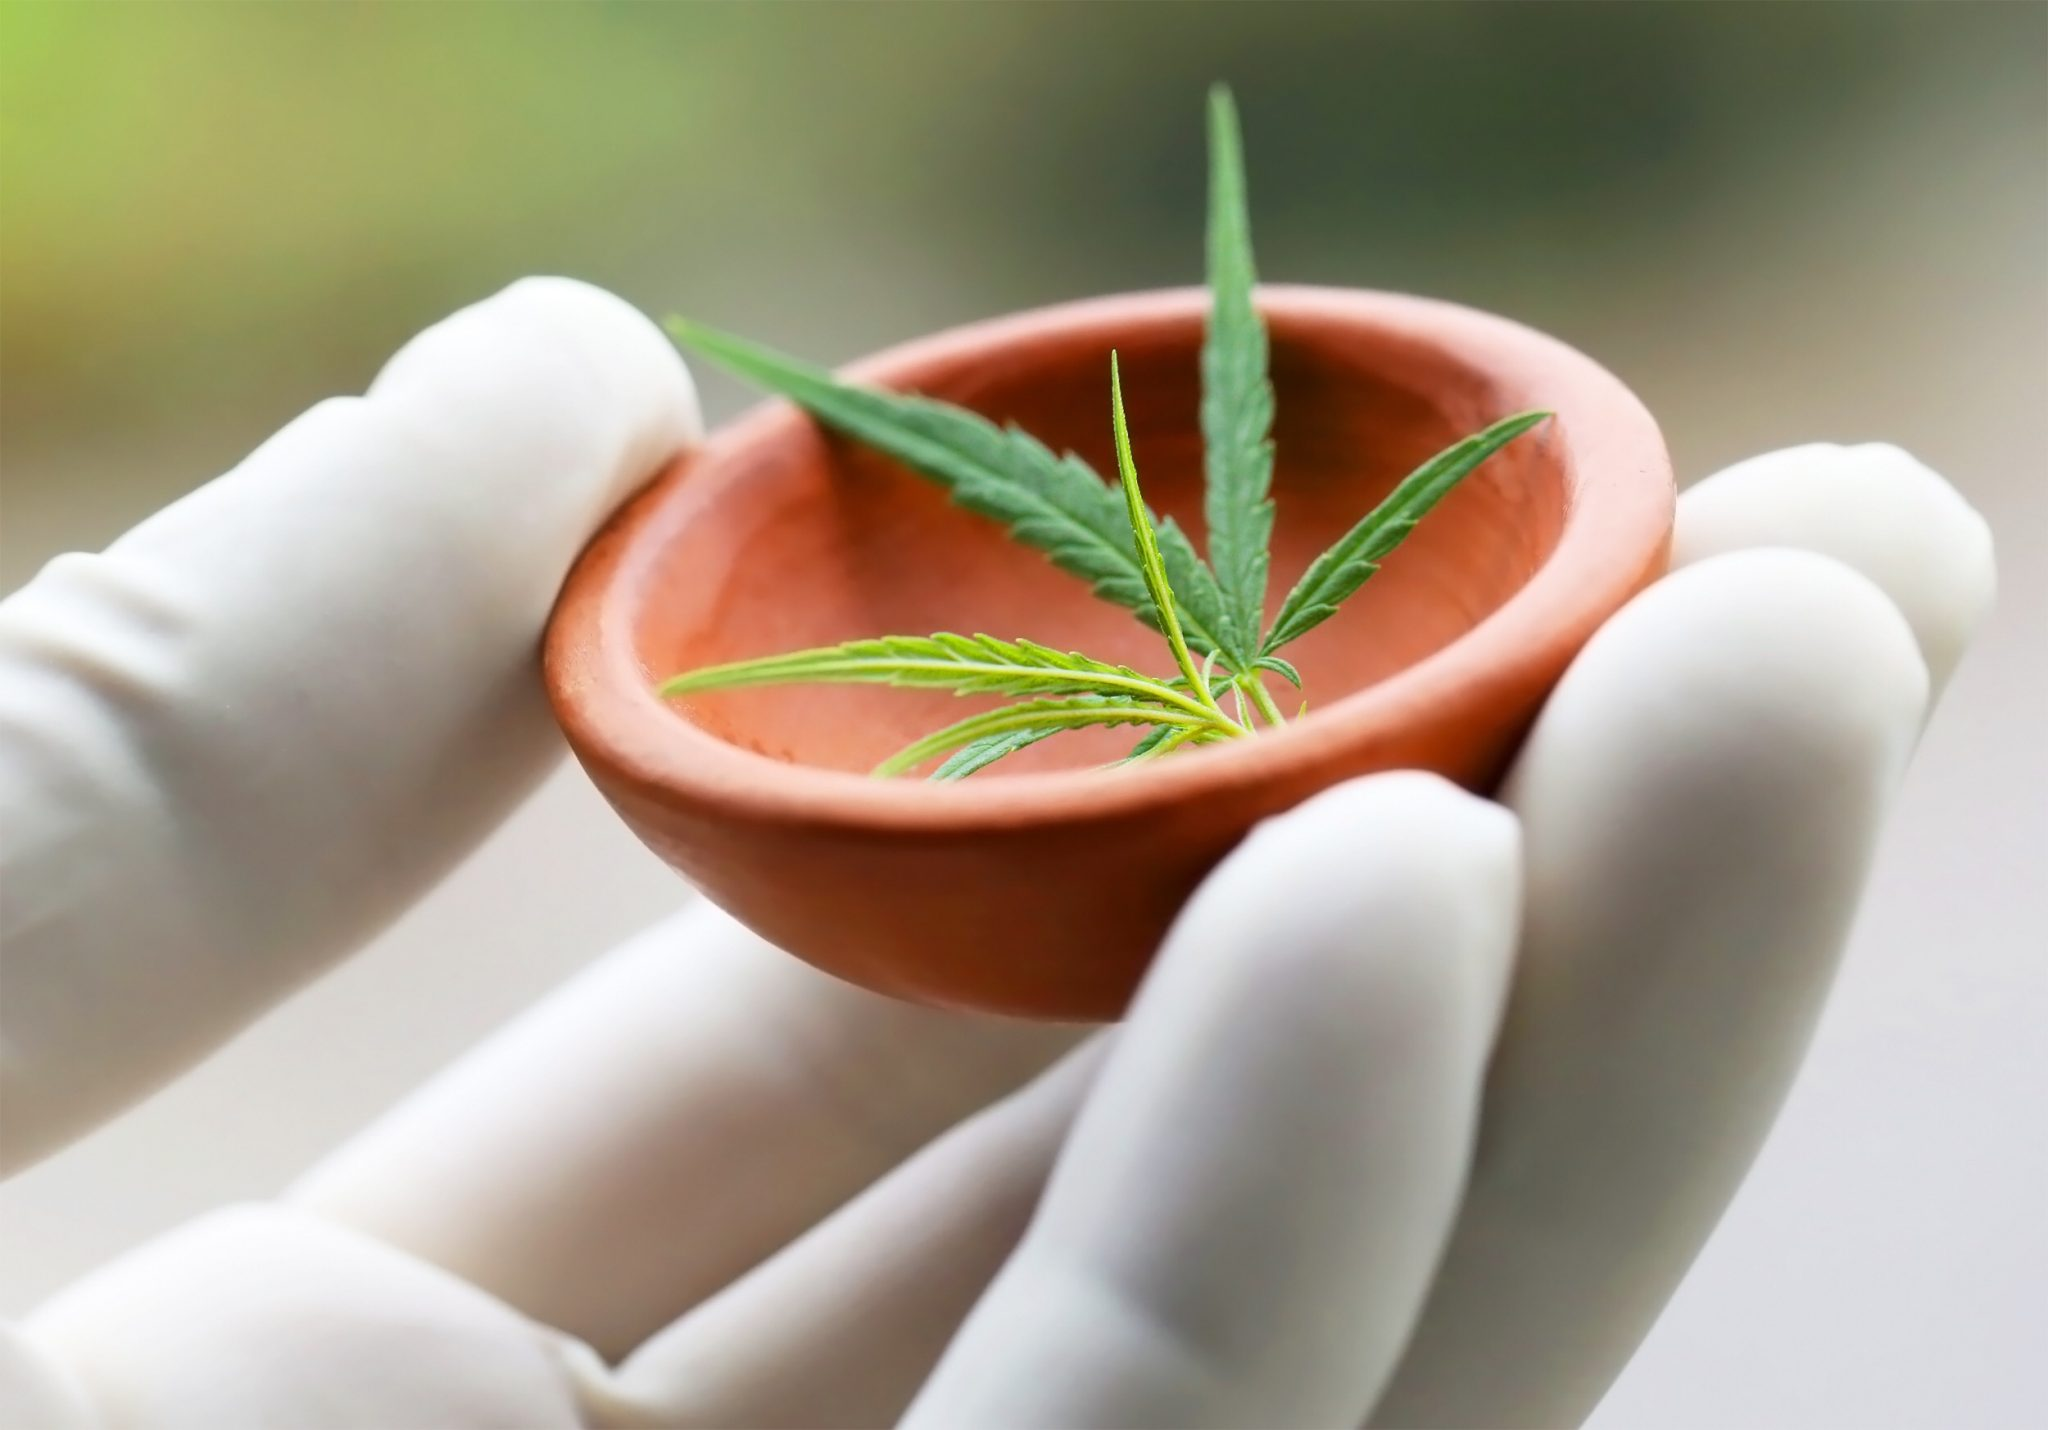 Academy of Sciences recommends rescheduling cannabis as medicine